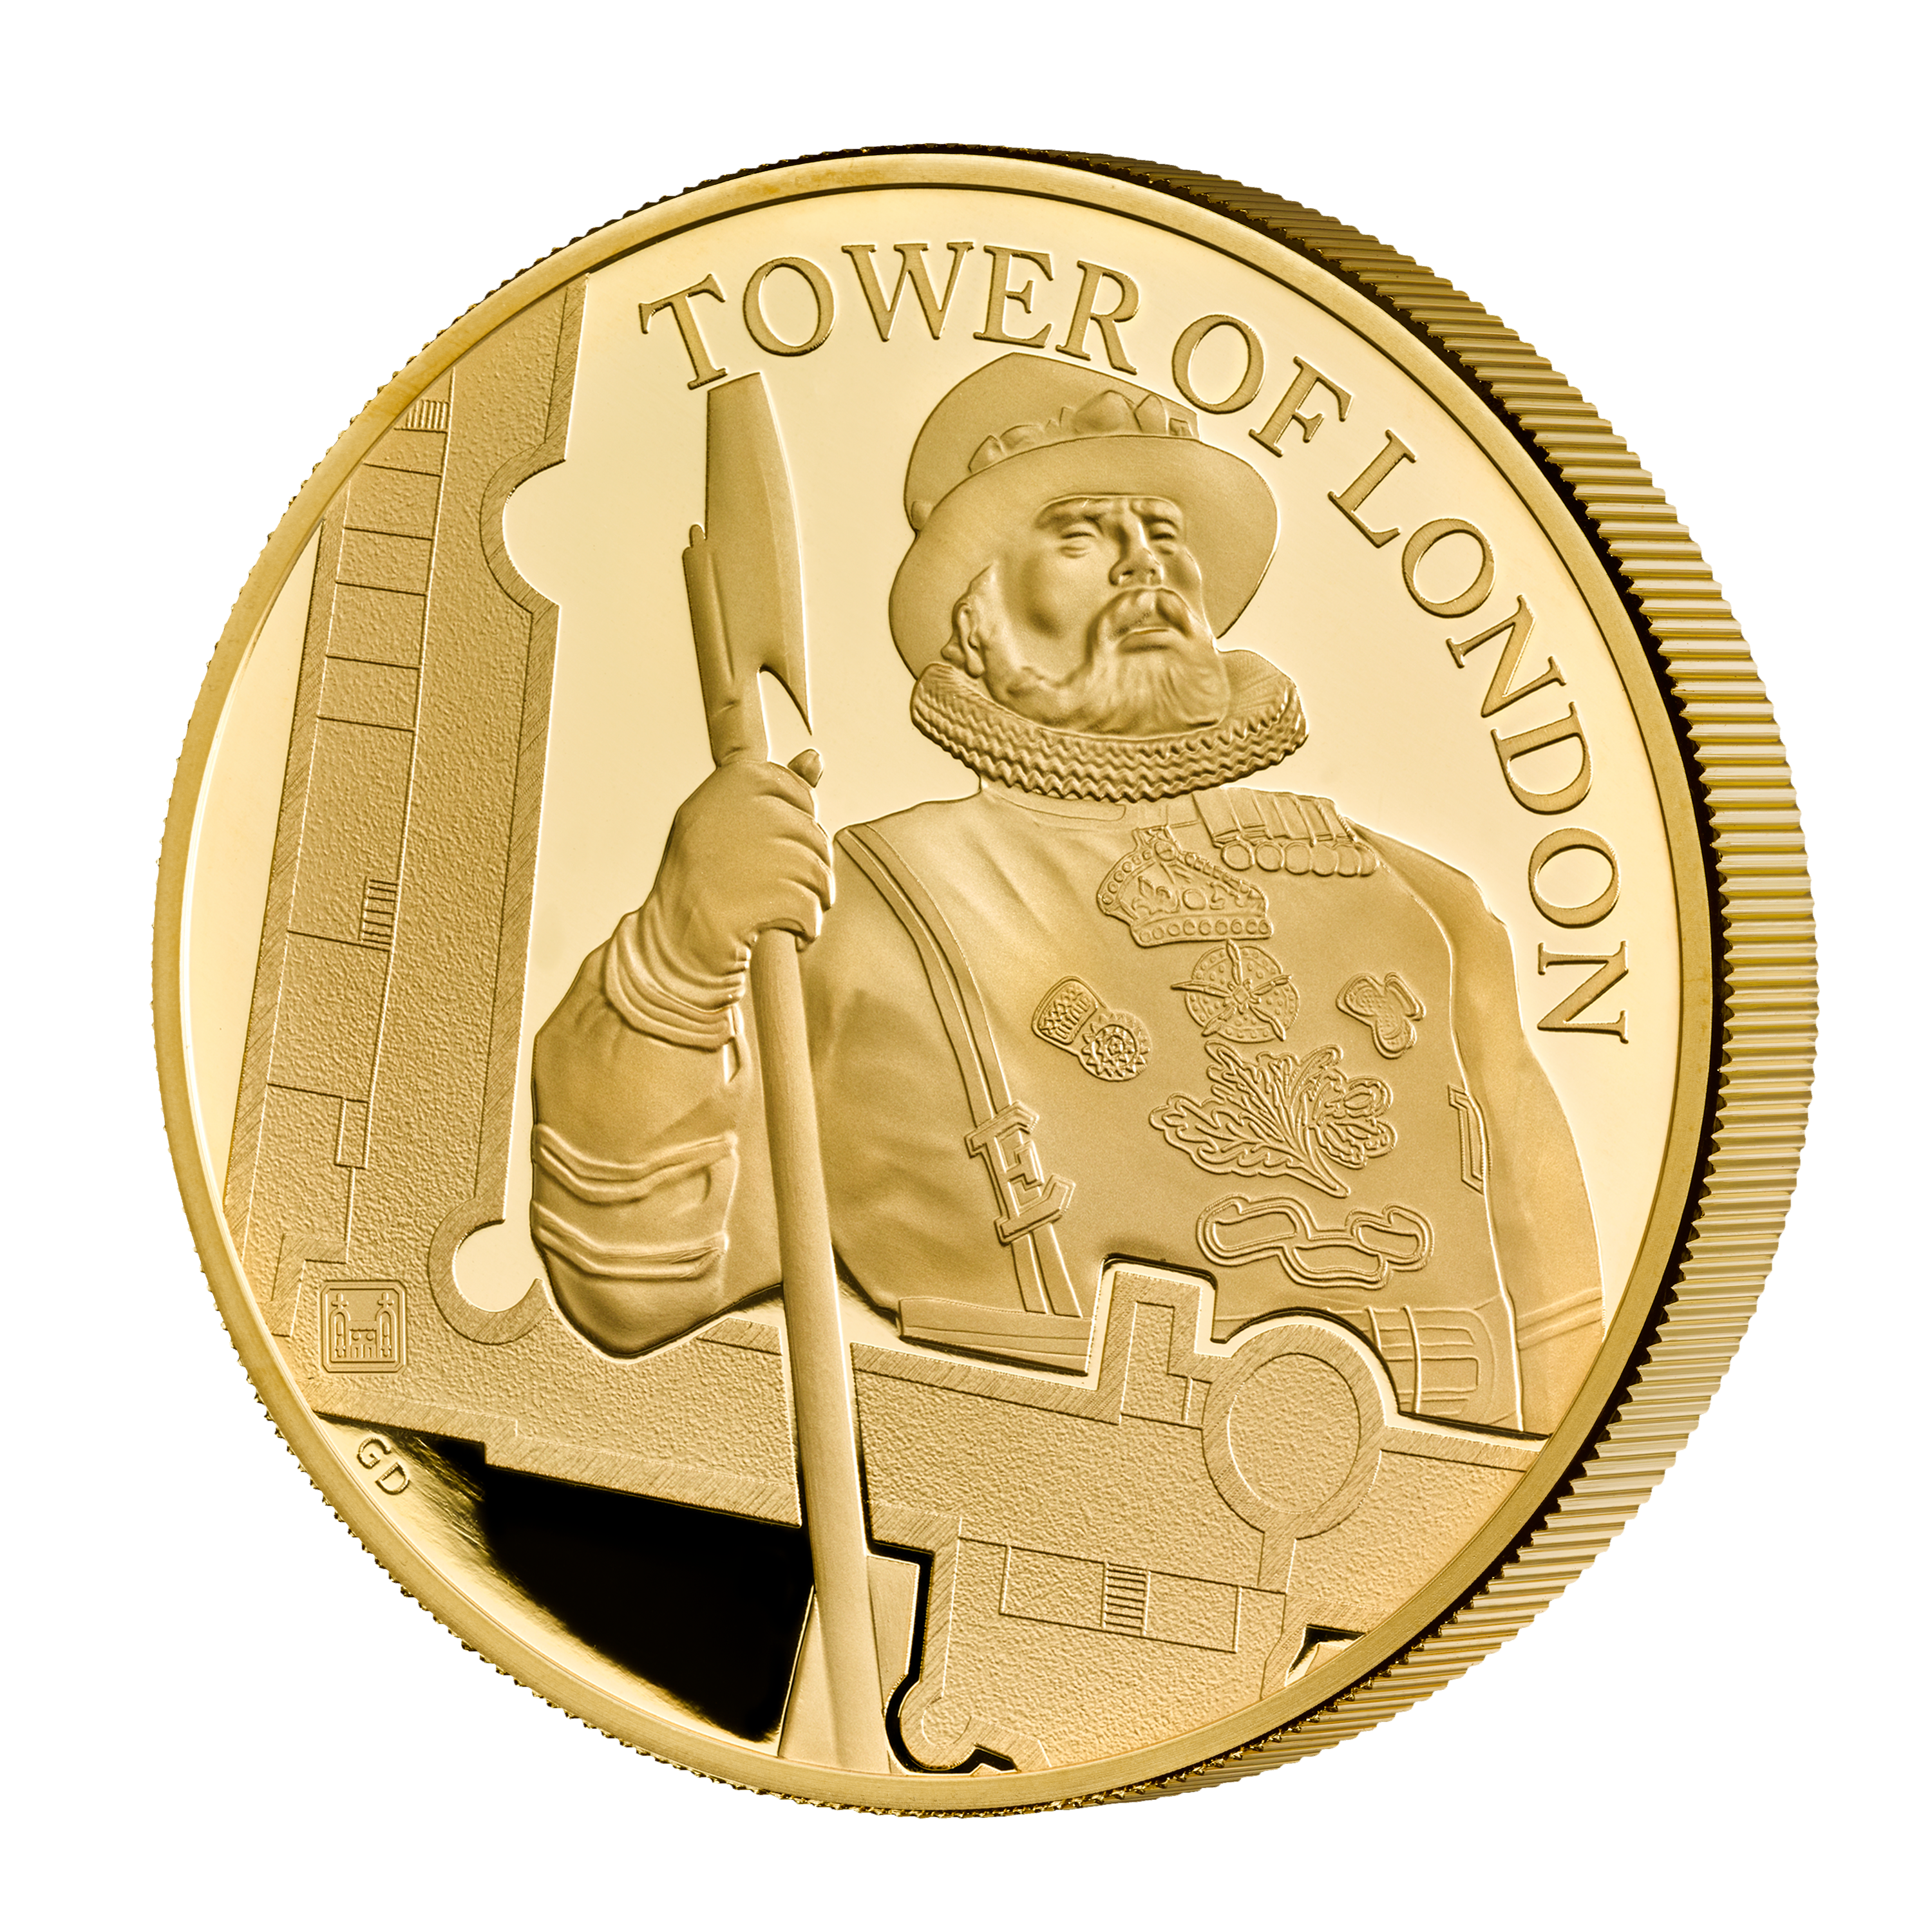 10 GBP Goldmünze Großbritannien The Tower of London - Die Yeoman Warders 5oz 2019 PP